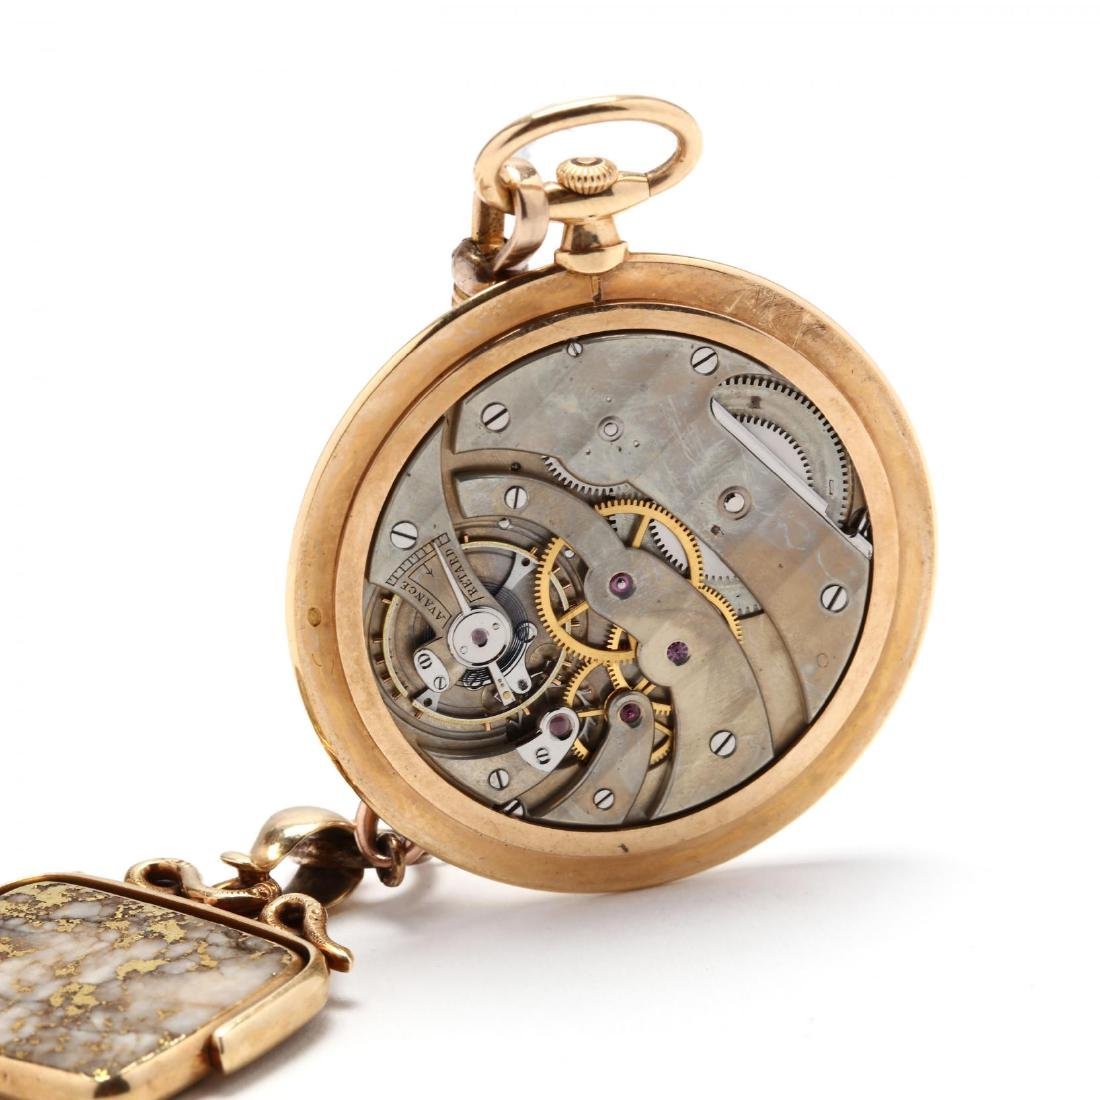 Vintage Tiffany & Co. 18KT Pocket Watch with - 4